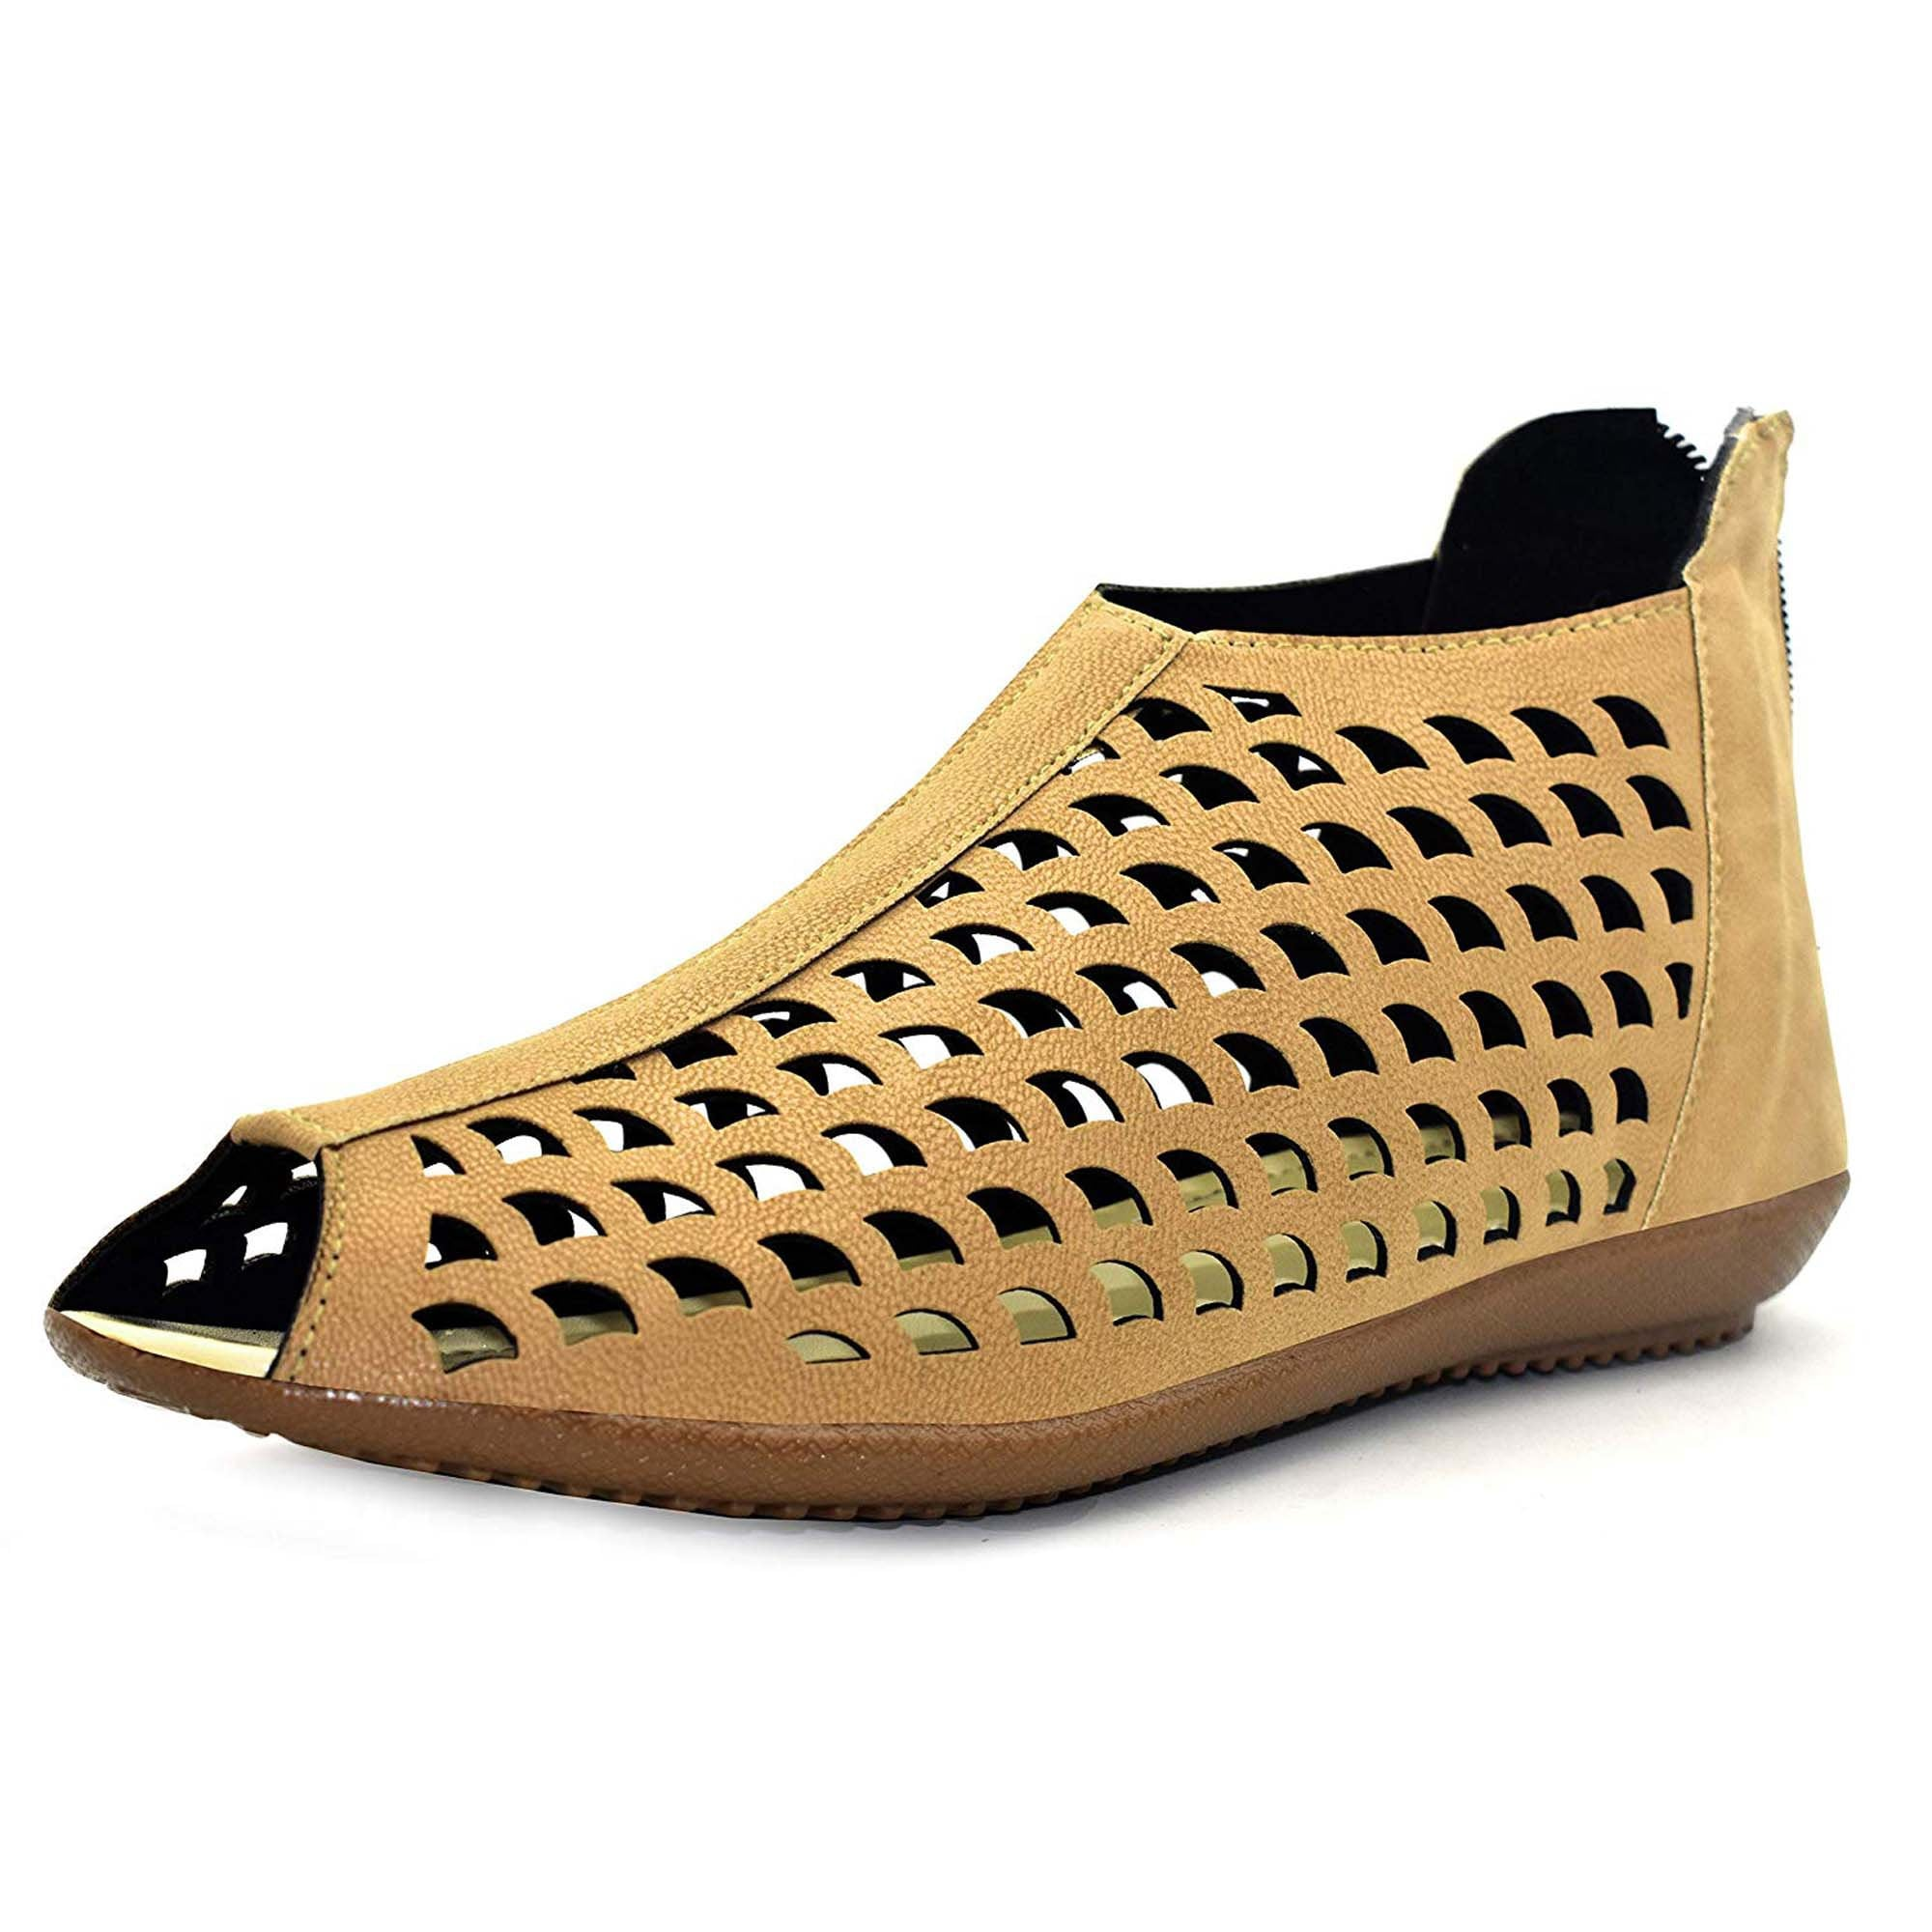 ded4f1e8ca8df Indian designer stylish ethnic muls clogs mojaries ballies shoes Boots  sandal flipflop and thongs for women and girls